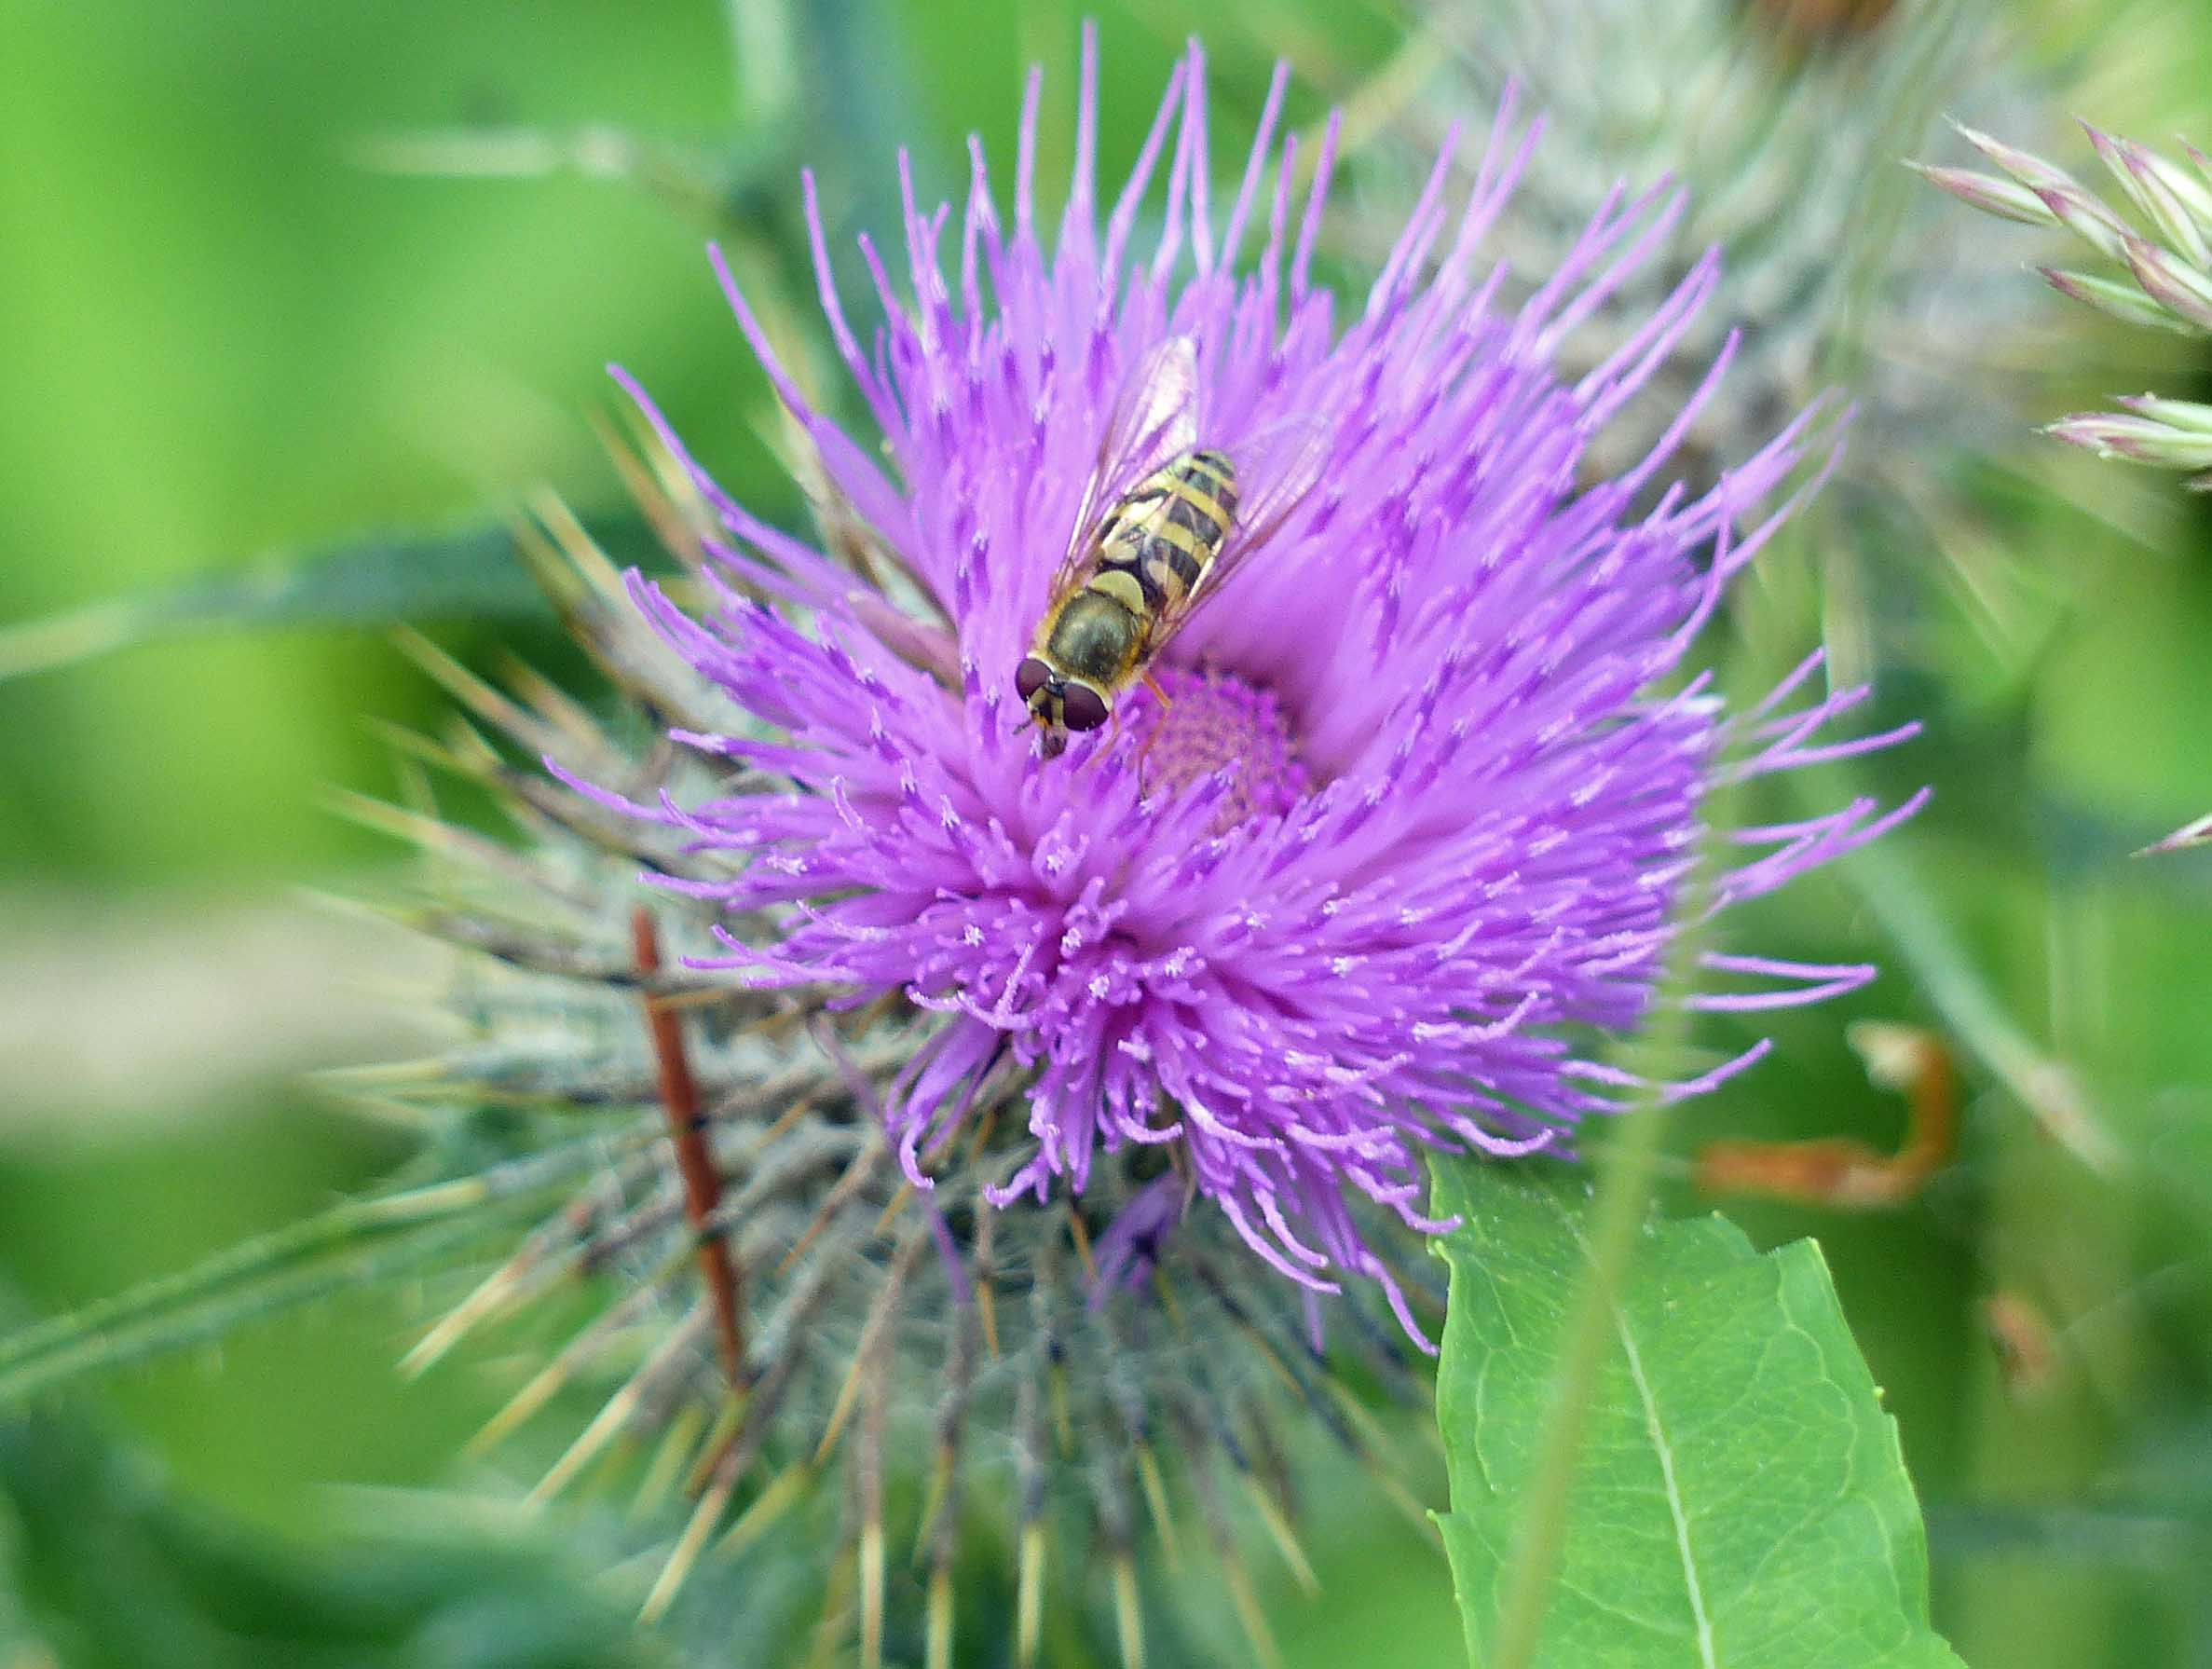 Purple flower with small bee